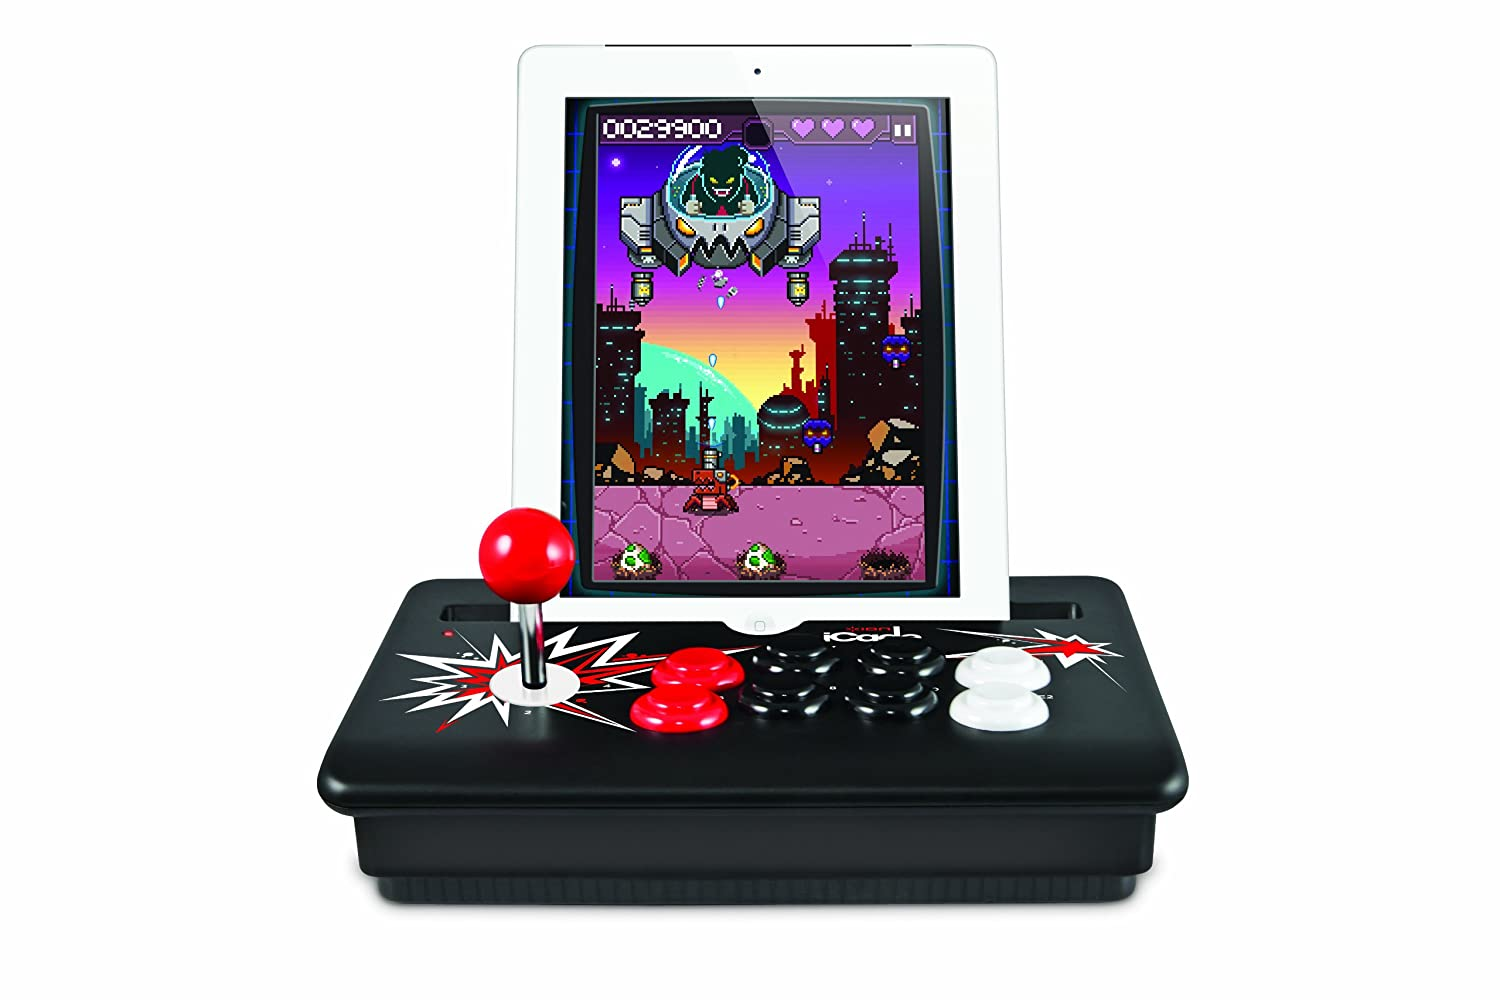 Amazon.com: Ion iCade Core Arcade Game Controller for iPad and ...